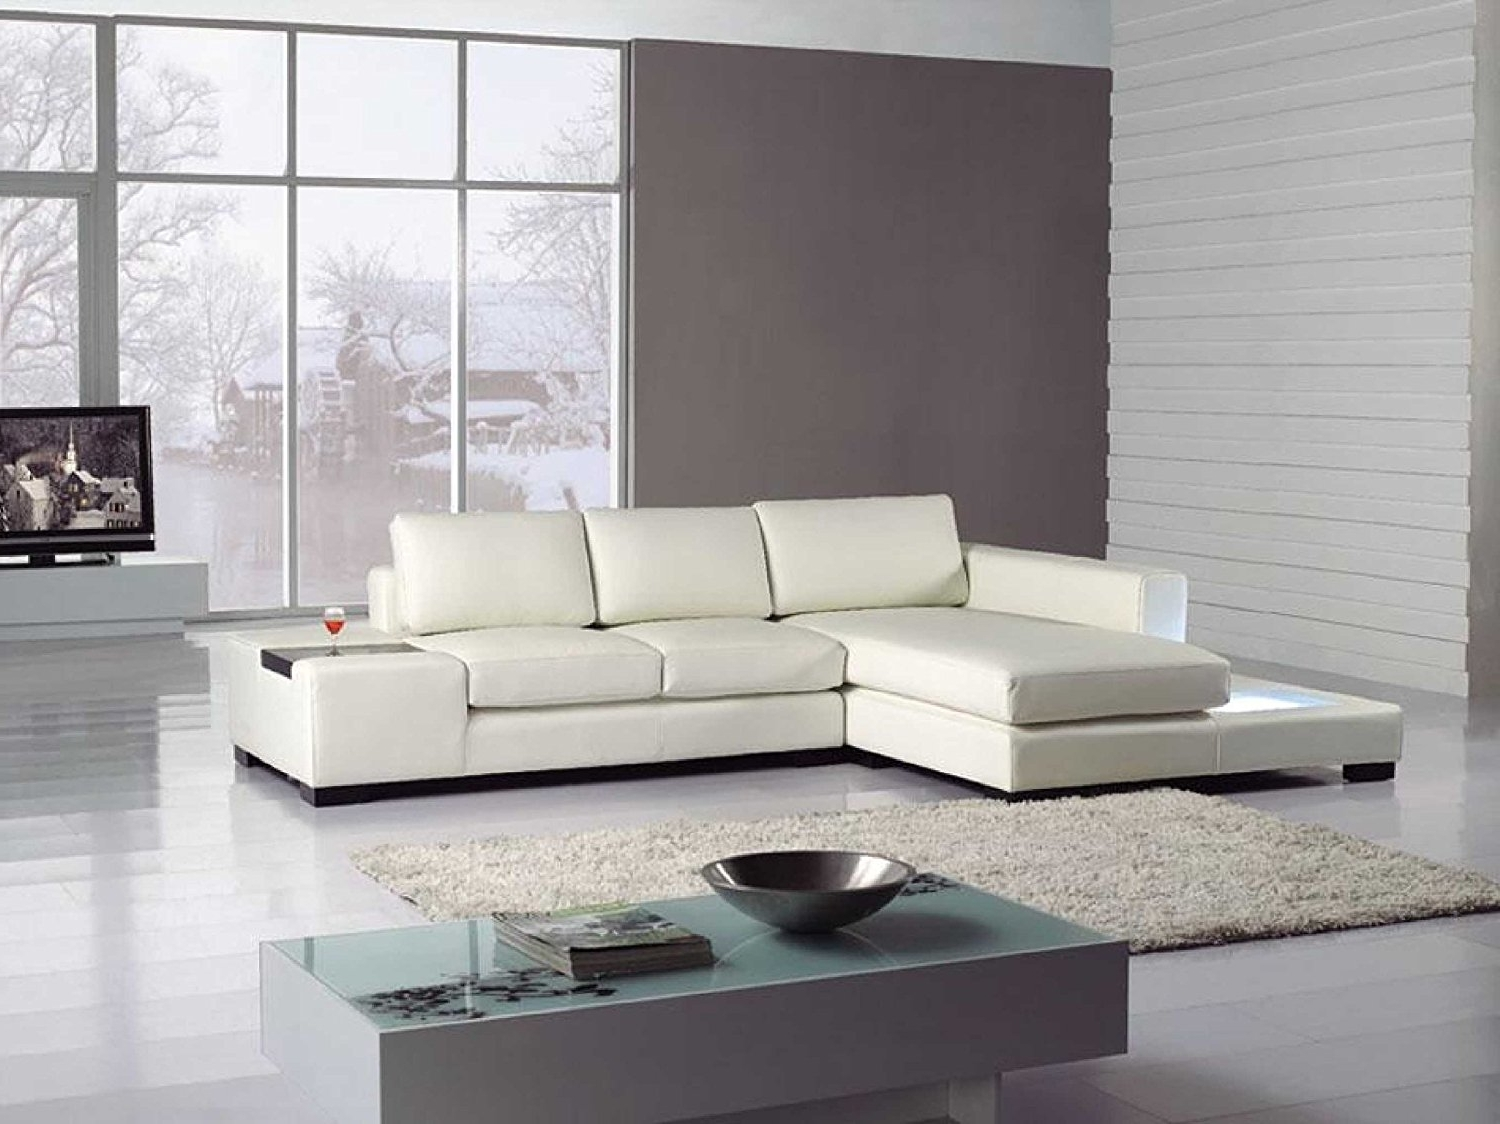 Newest Canada Sale Sectional Sofas Throughout Amazon: T35 Mini White Bonded Leather Sectional With Light (View 12 of 15)